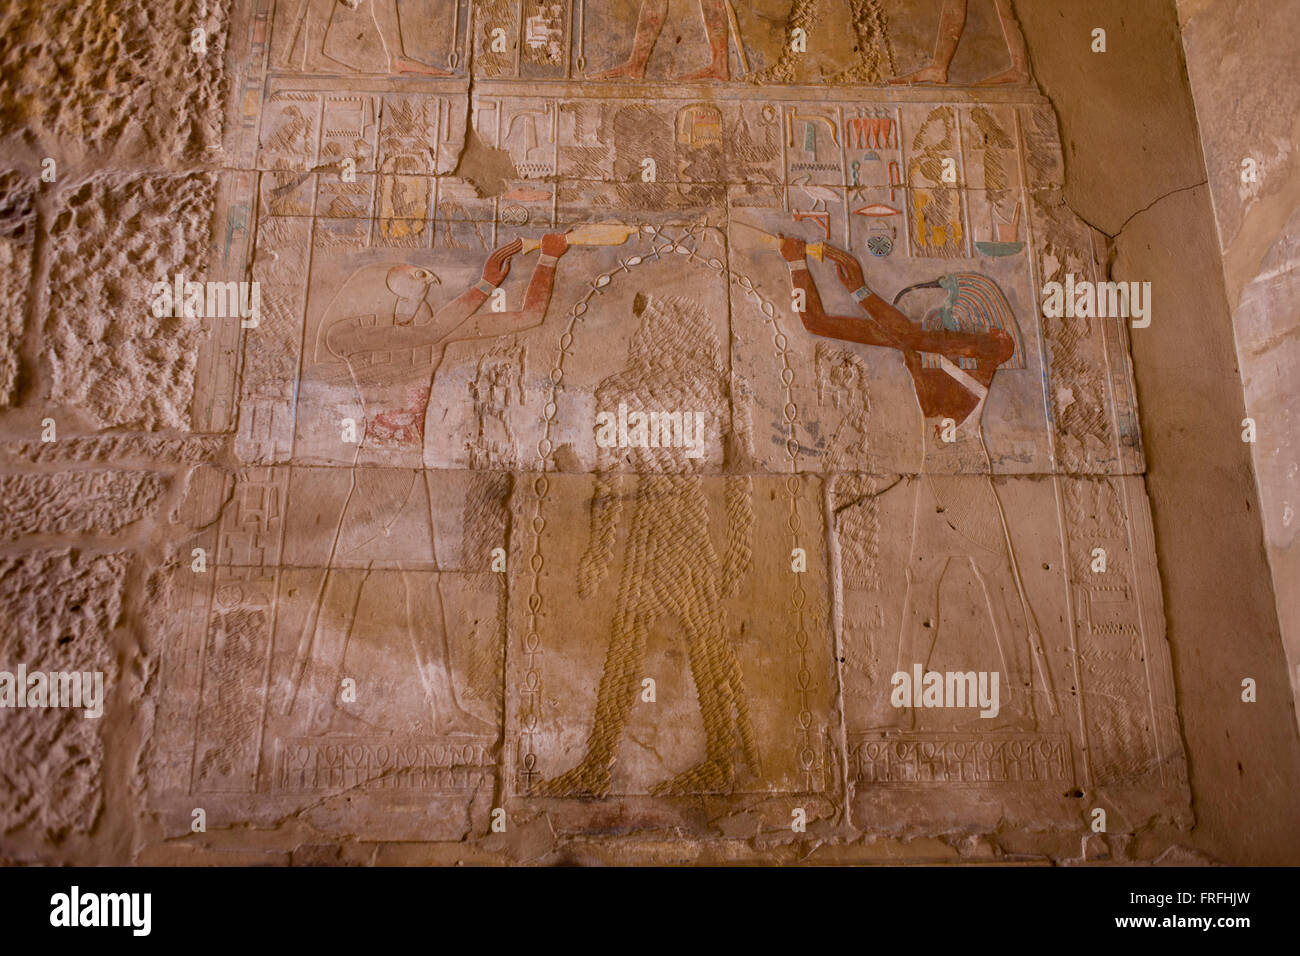 a-detail-of-a-defaced-queen-hatshepsut-i